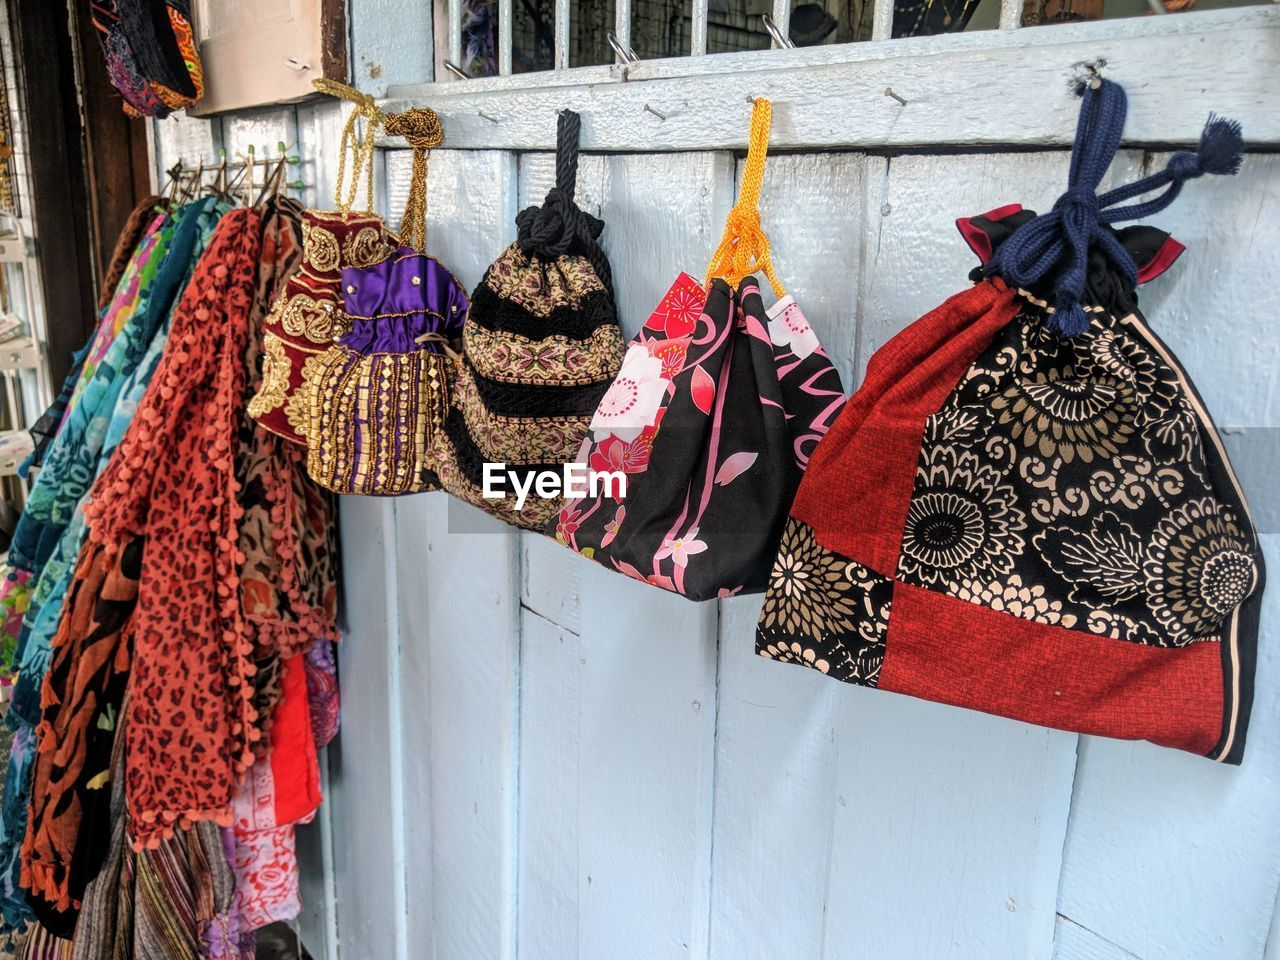 hanging, retail, no people, clothing, choice, market, variation, retail display, textile, day, for sale, market stall, outdoors, small business, wall - building feature, side by side, multi colored, architecture, drying